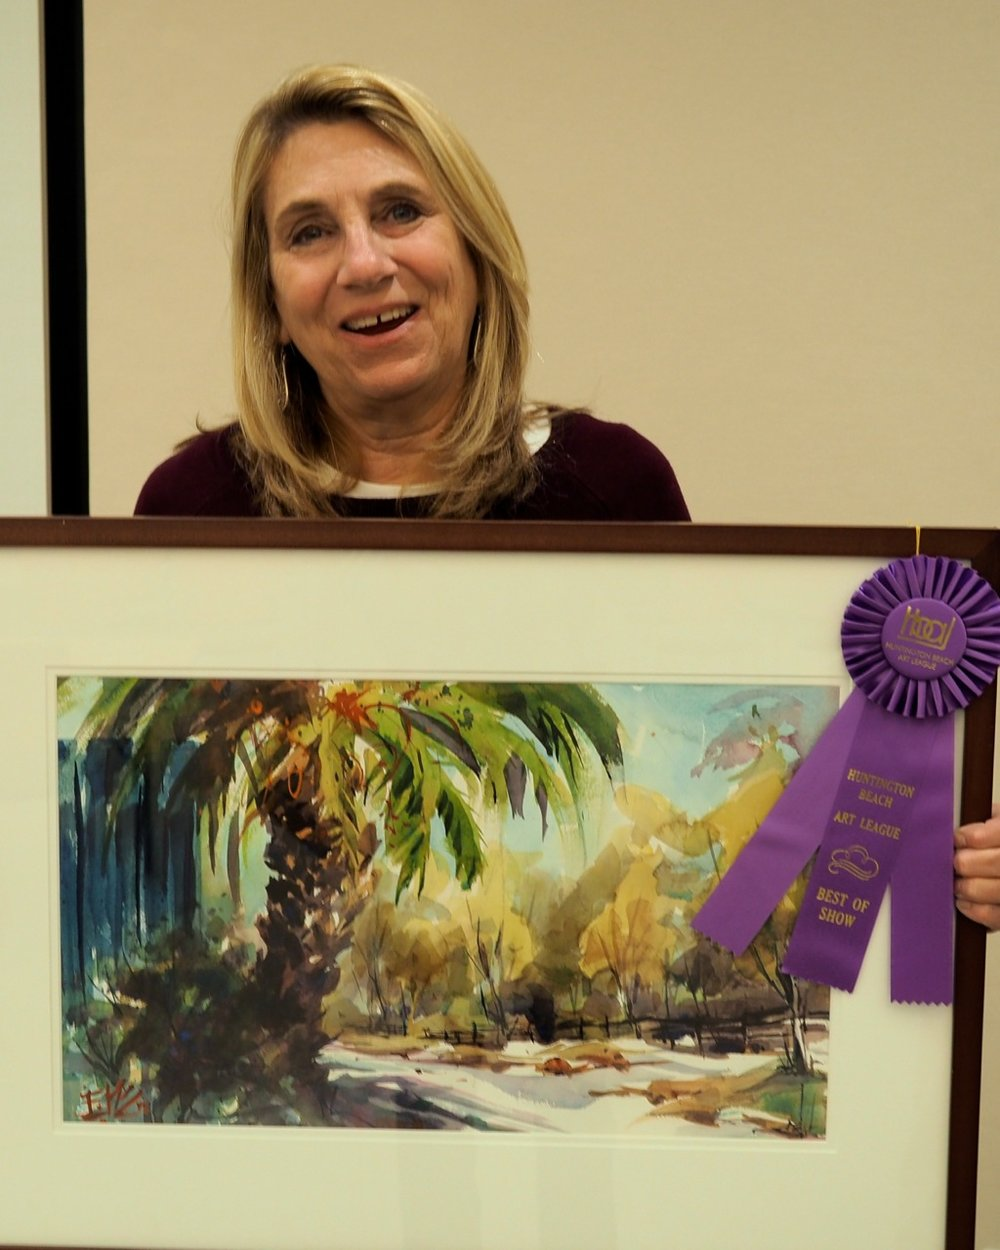 Best of Show Eileen McCullough.jpg